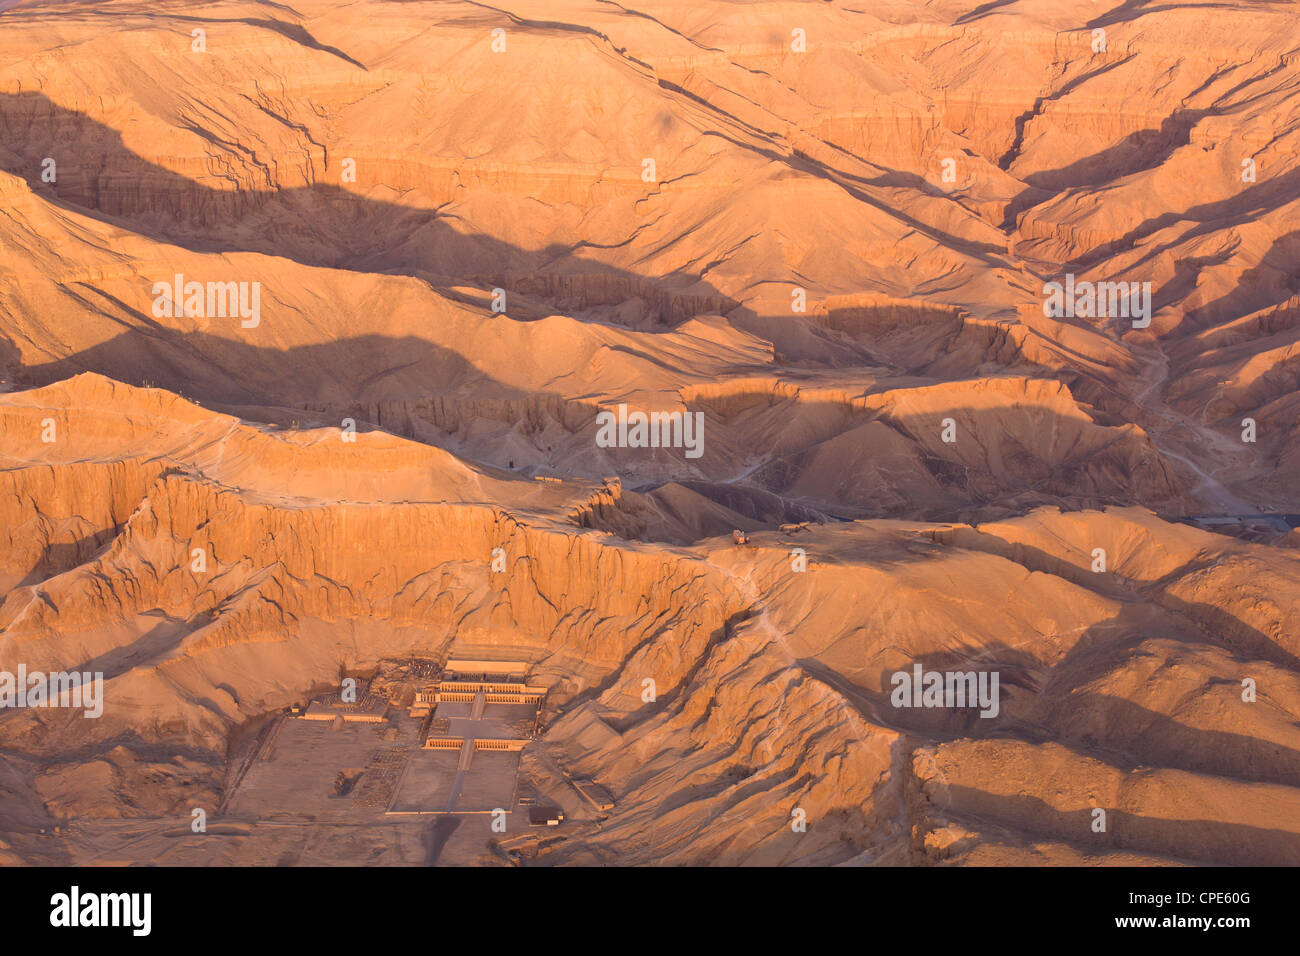 Aerial view from hot air balloon of Hatshepsut's Mortuary Temple, Thebes, Egypt - Stock Image